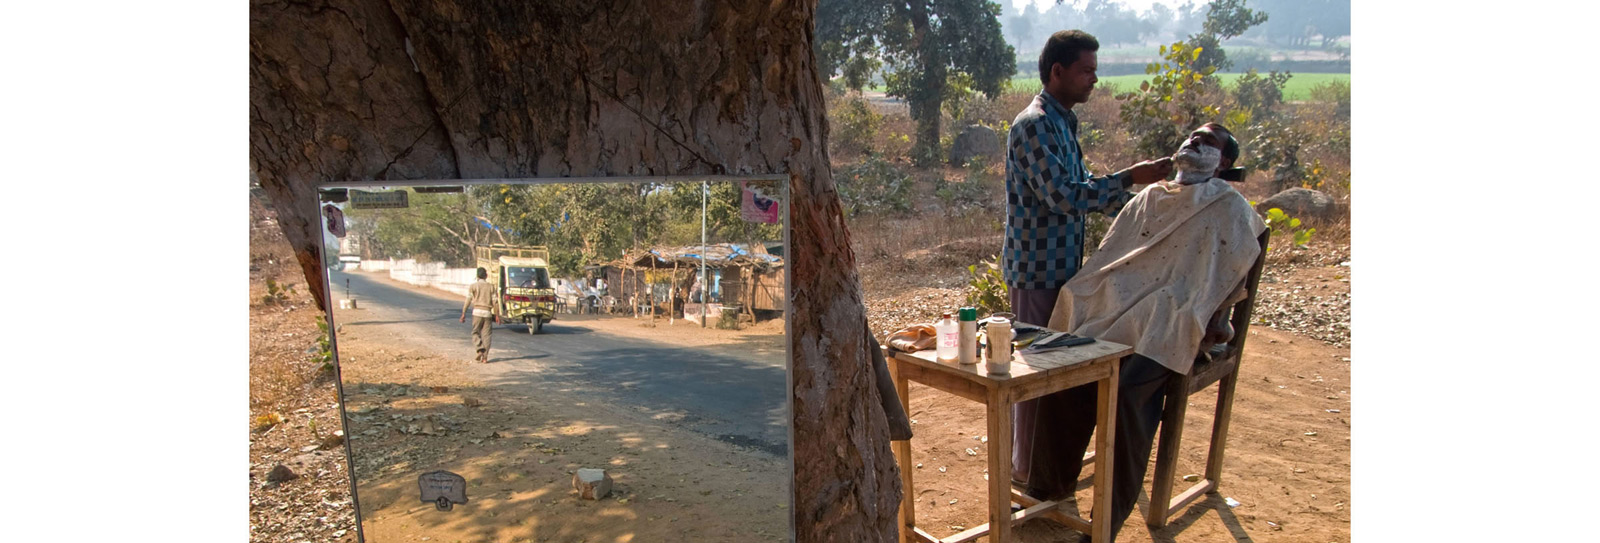 FirstLook: State Highway 37, near Orchha, Madhya Pradesh, Central India